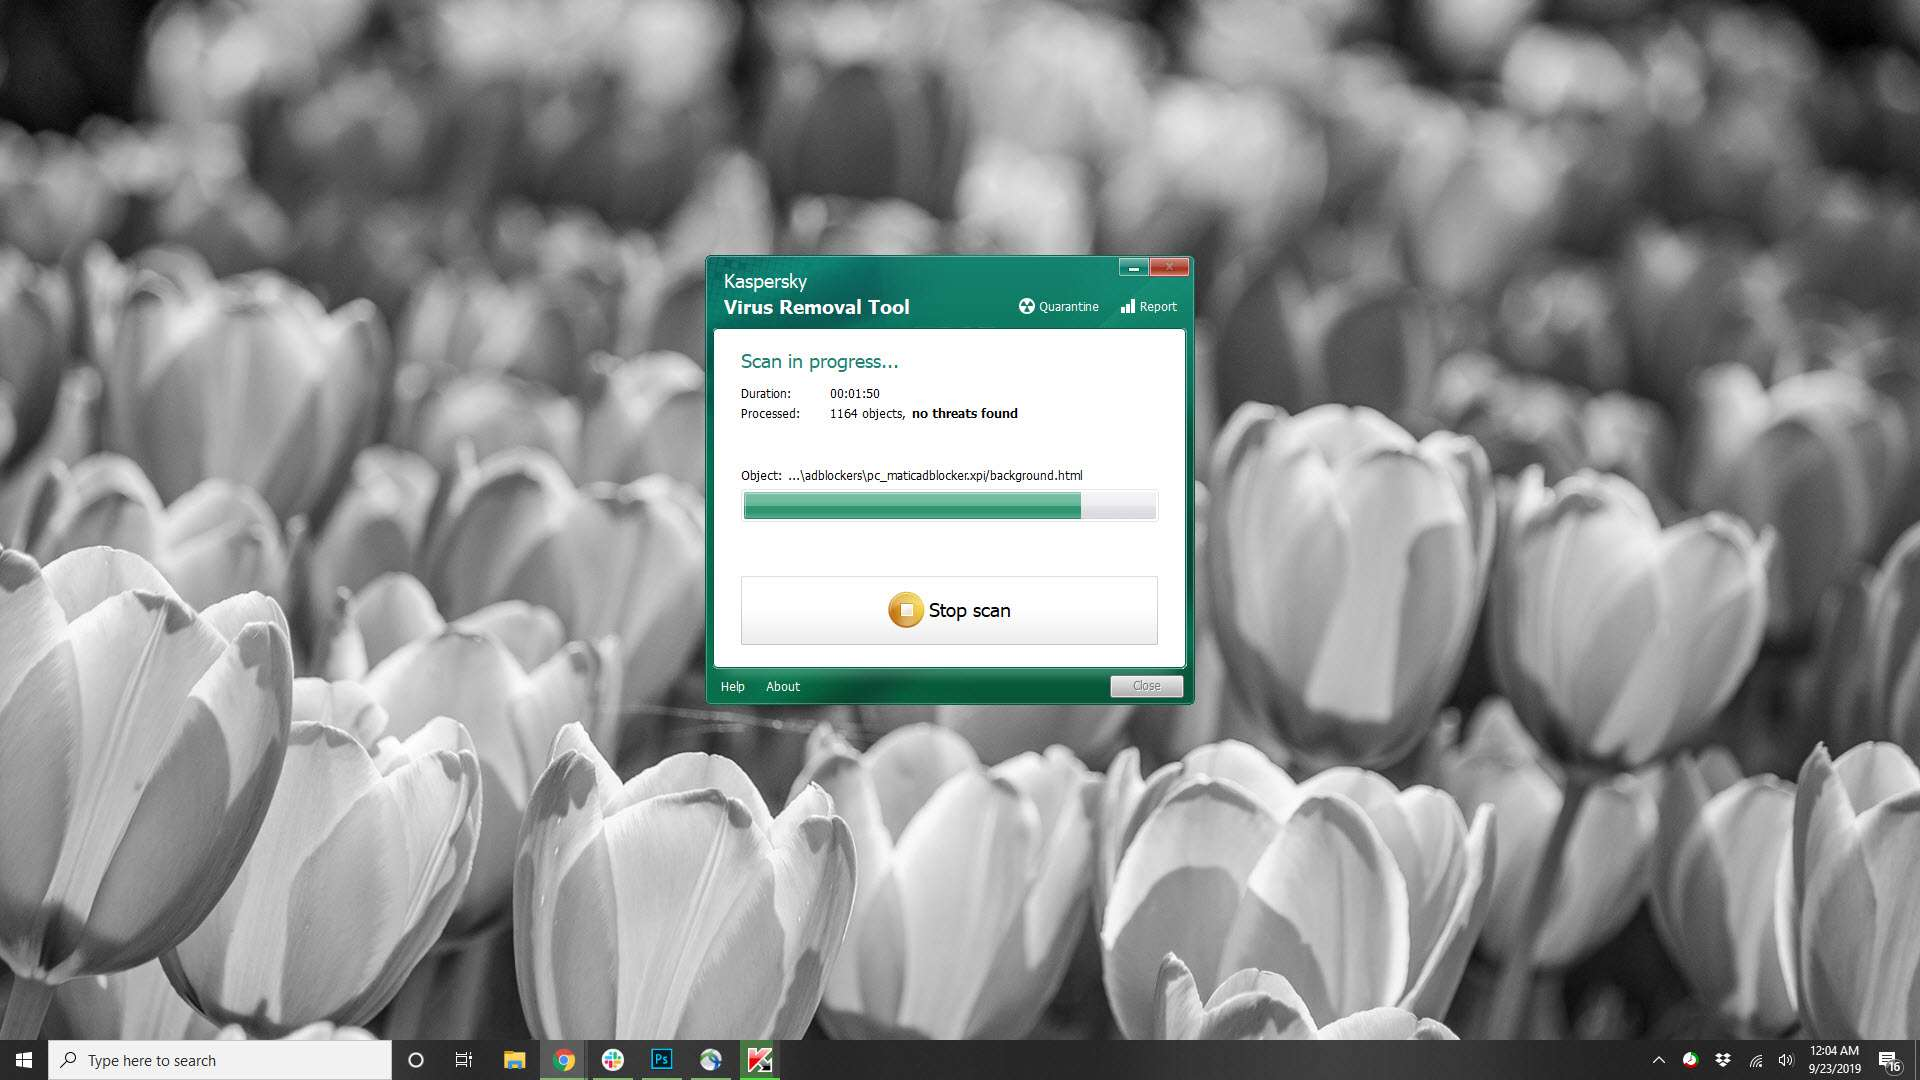 A screenshot of the Kaspersky Virus Removal tool in mid-scan.